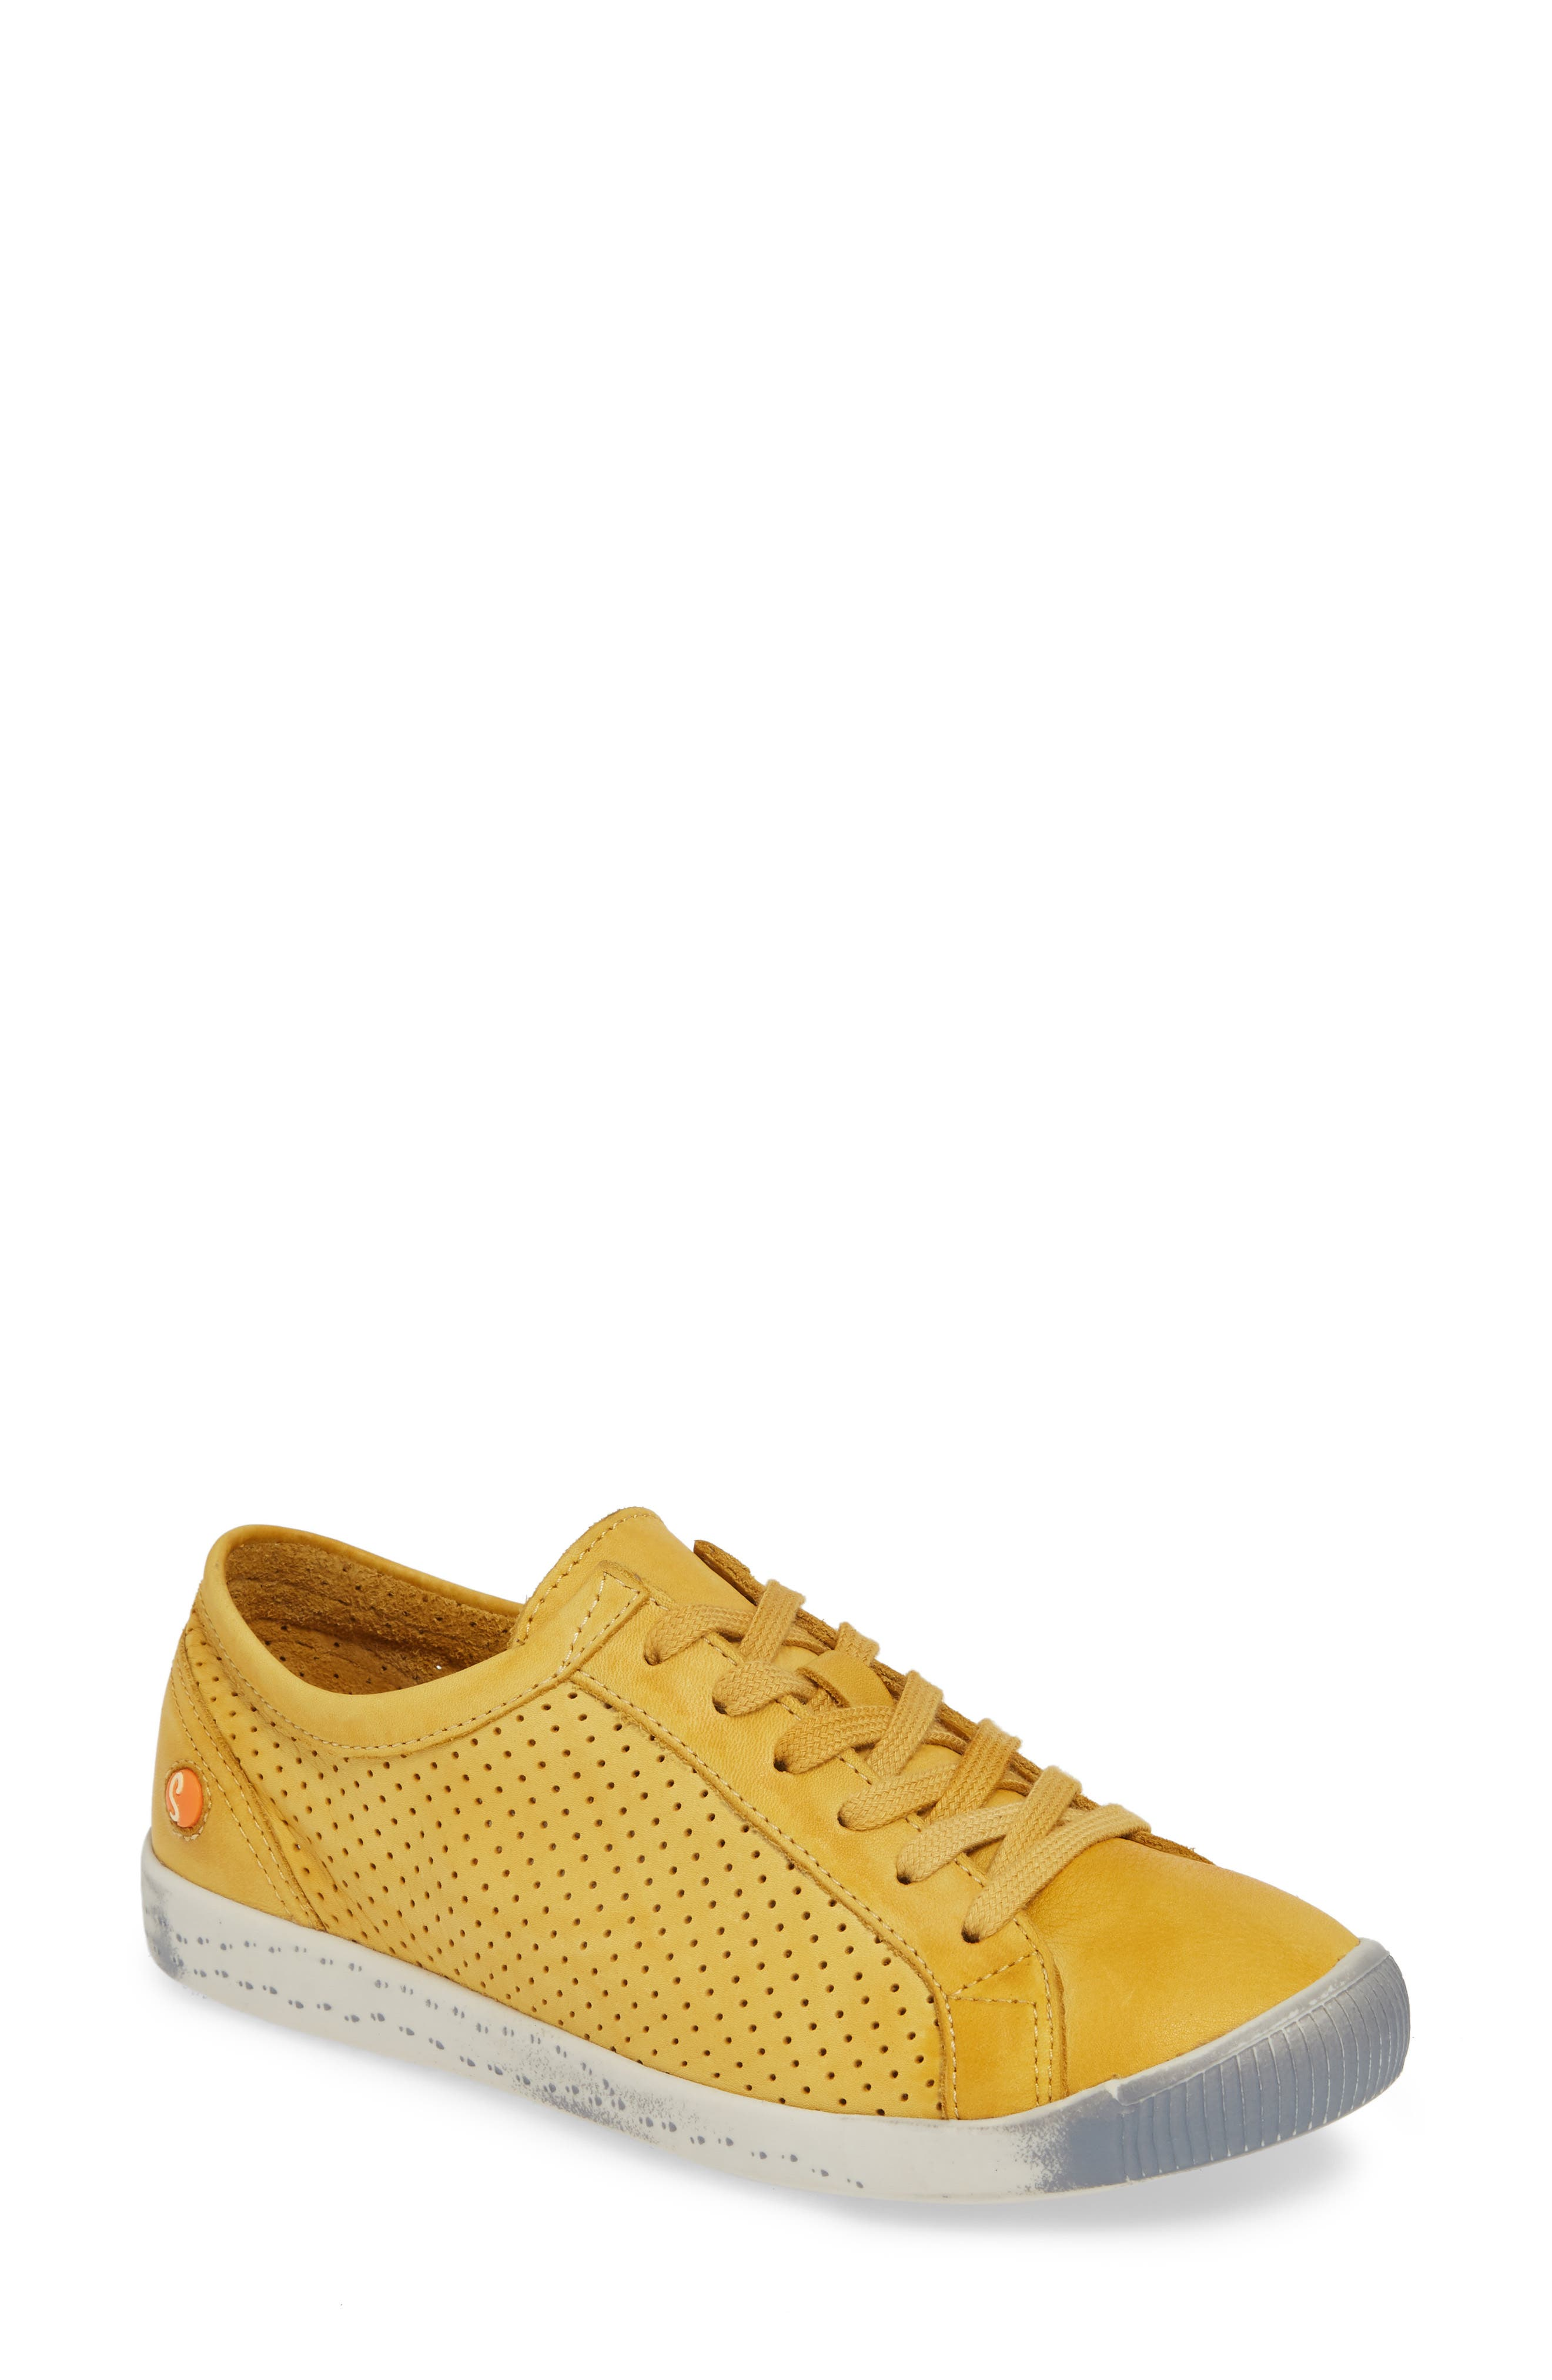 Softinos By Fly London Ica Sneaker - Yellow